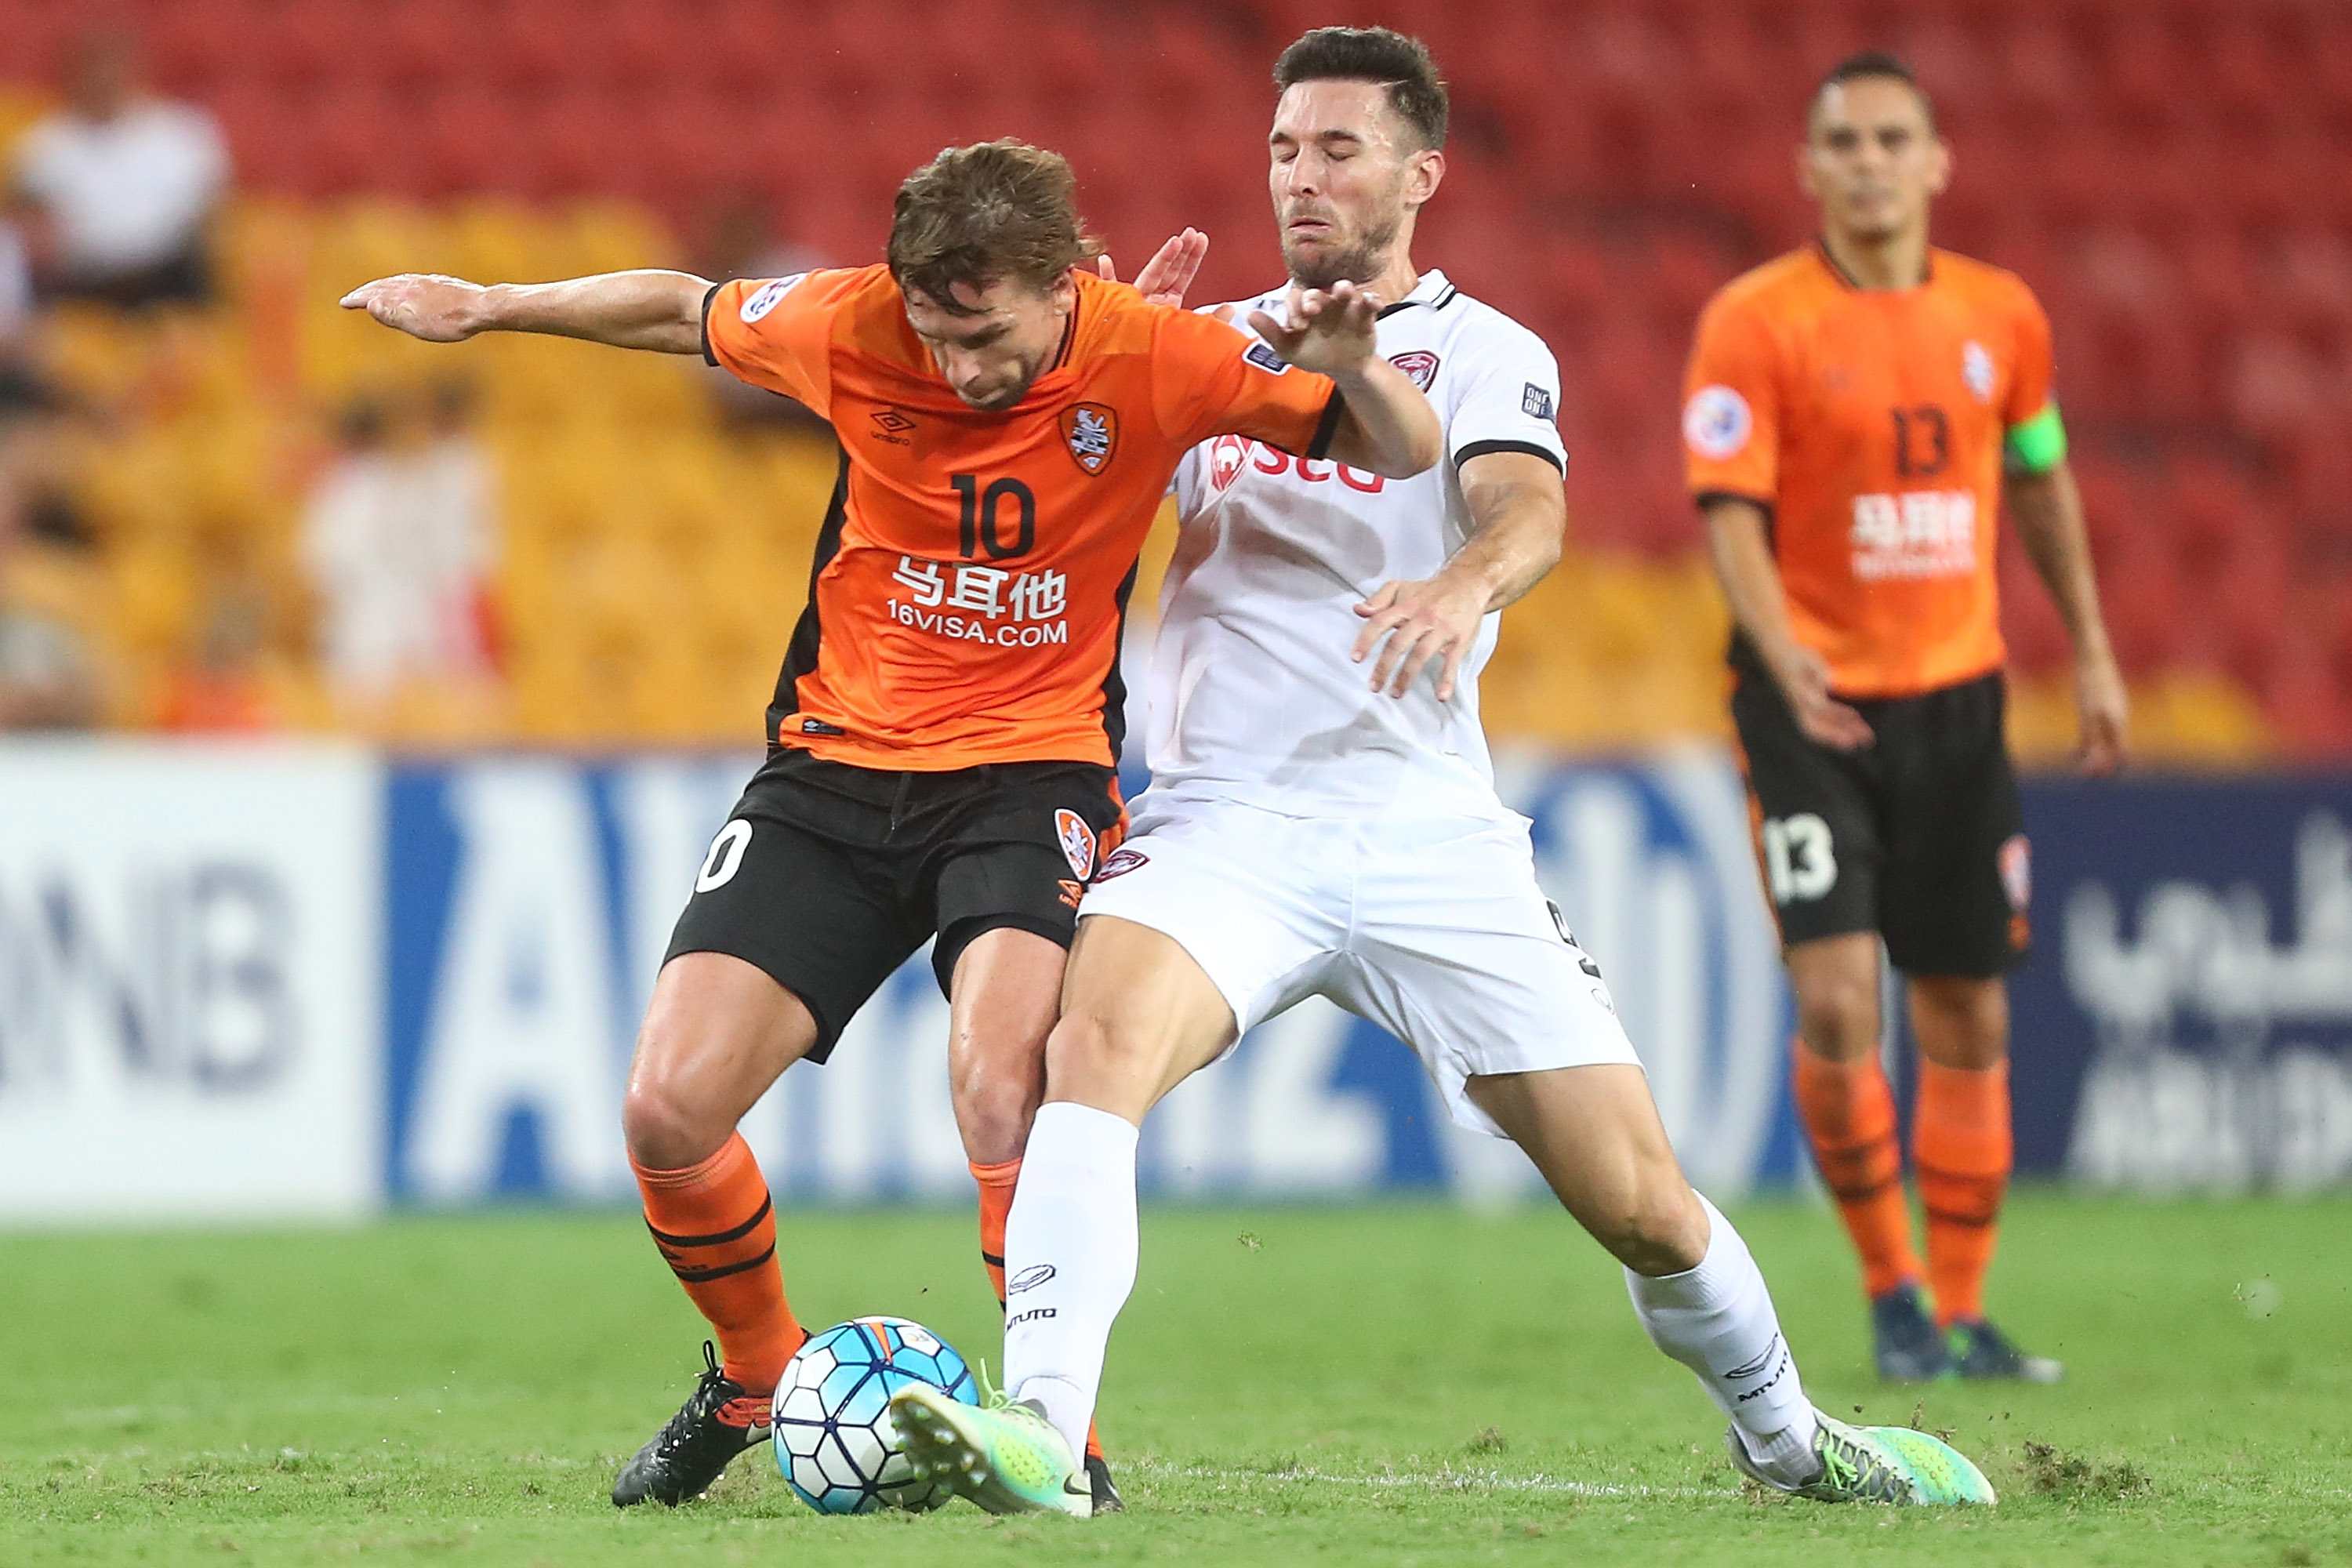 Brett Holman of the Roar and Xisco Jimenez of Muangthong United compete for the ball during the AFC Champions League match between the Brisbane Roar and Muangthong United at Suncorp Stadium on February 21, 2017 in Brisbane, Australia.